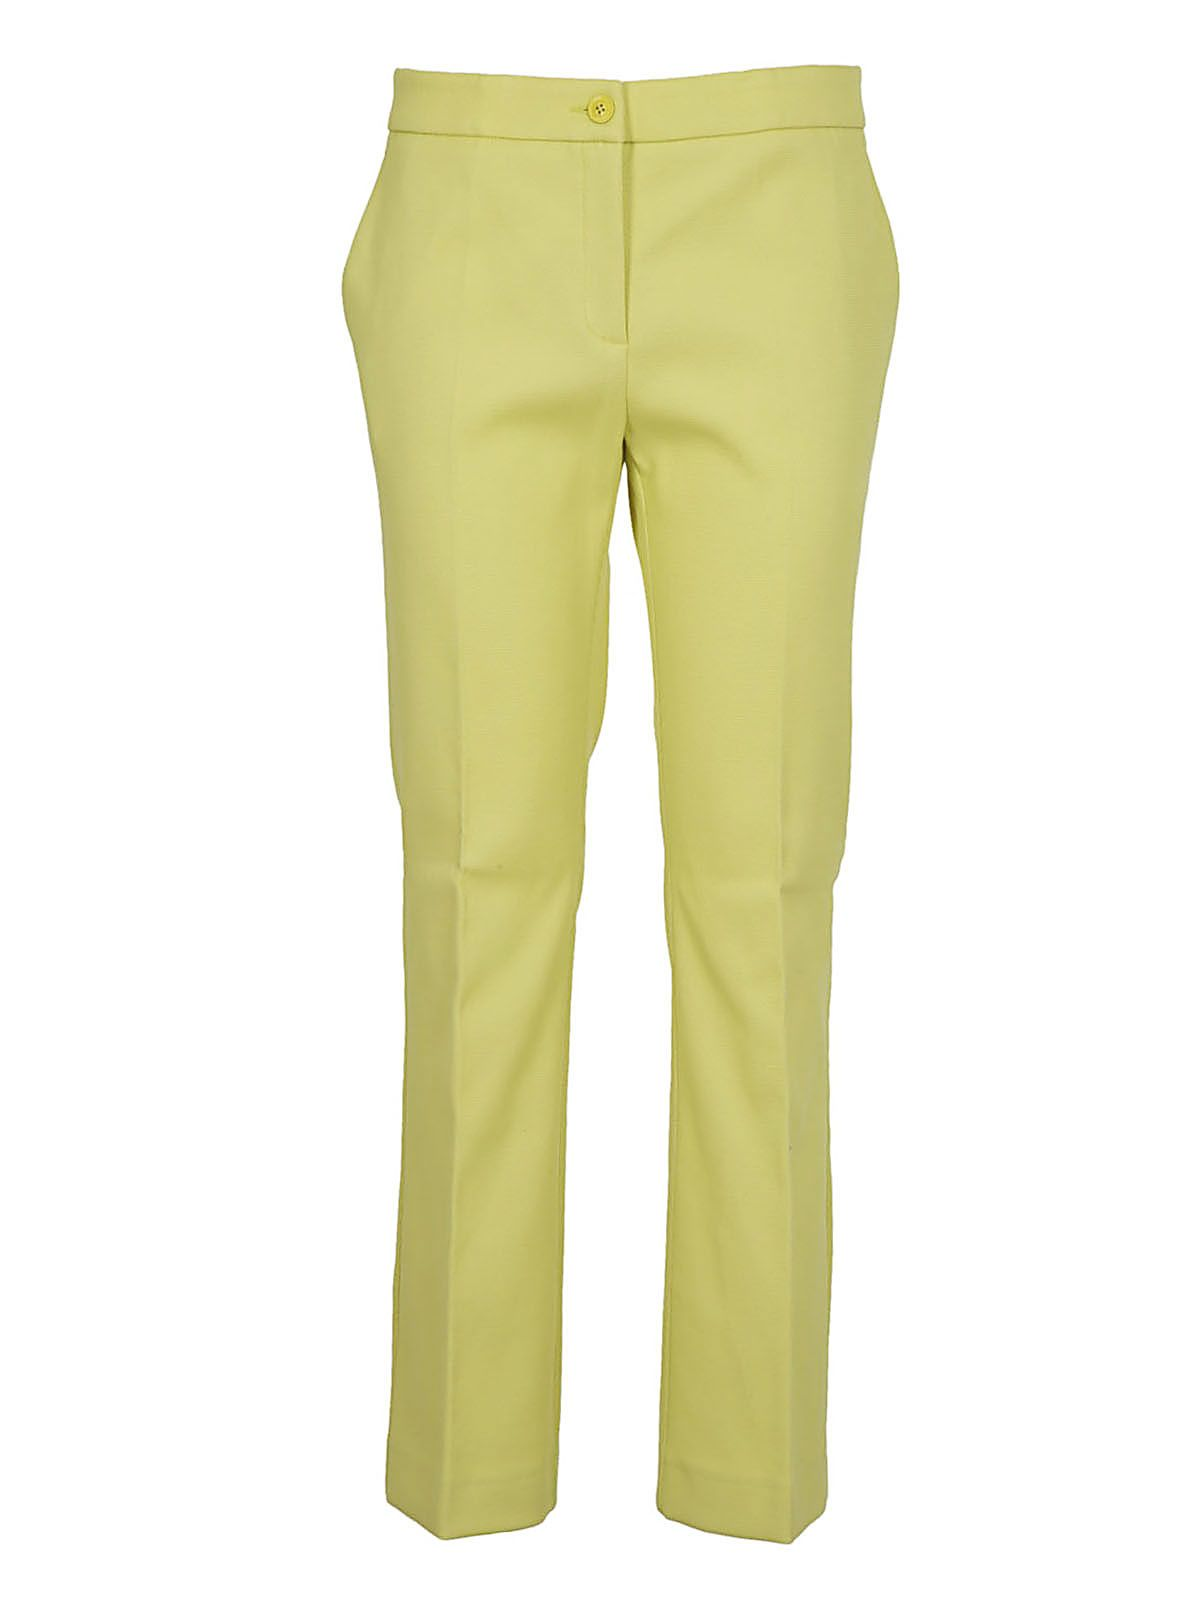 Boutique Moschino Classic Trousers